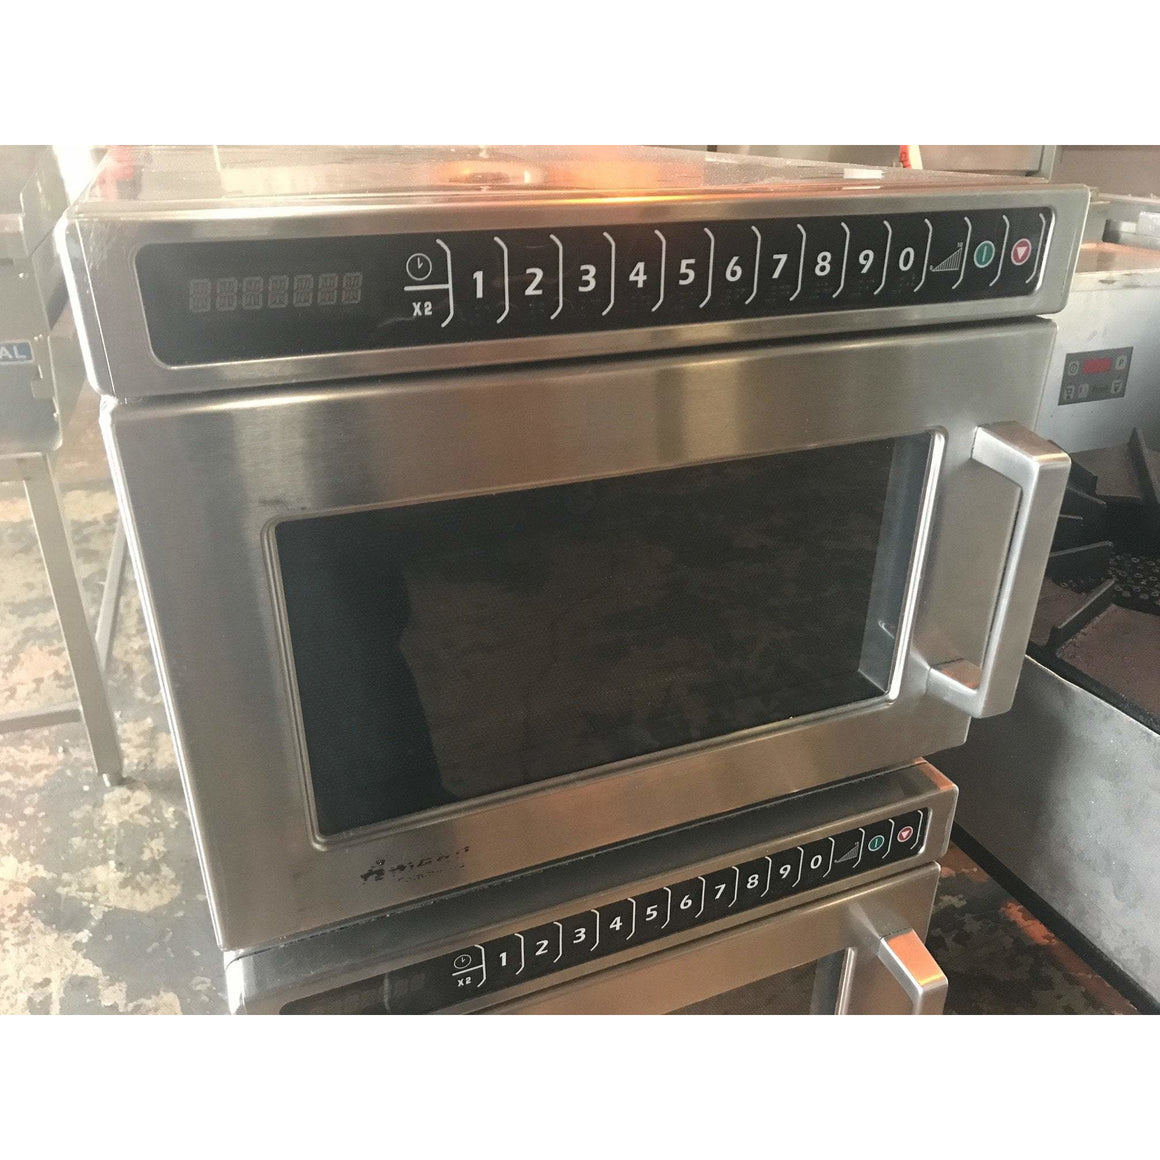 Amana Commercial Microwave Oven (USED)